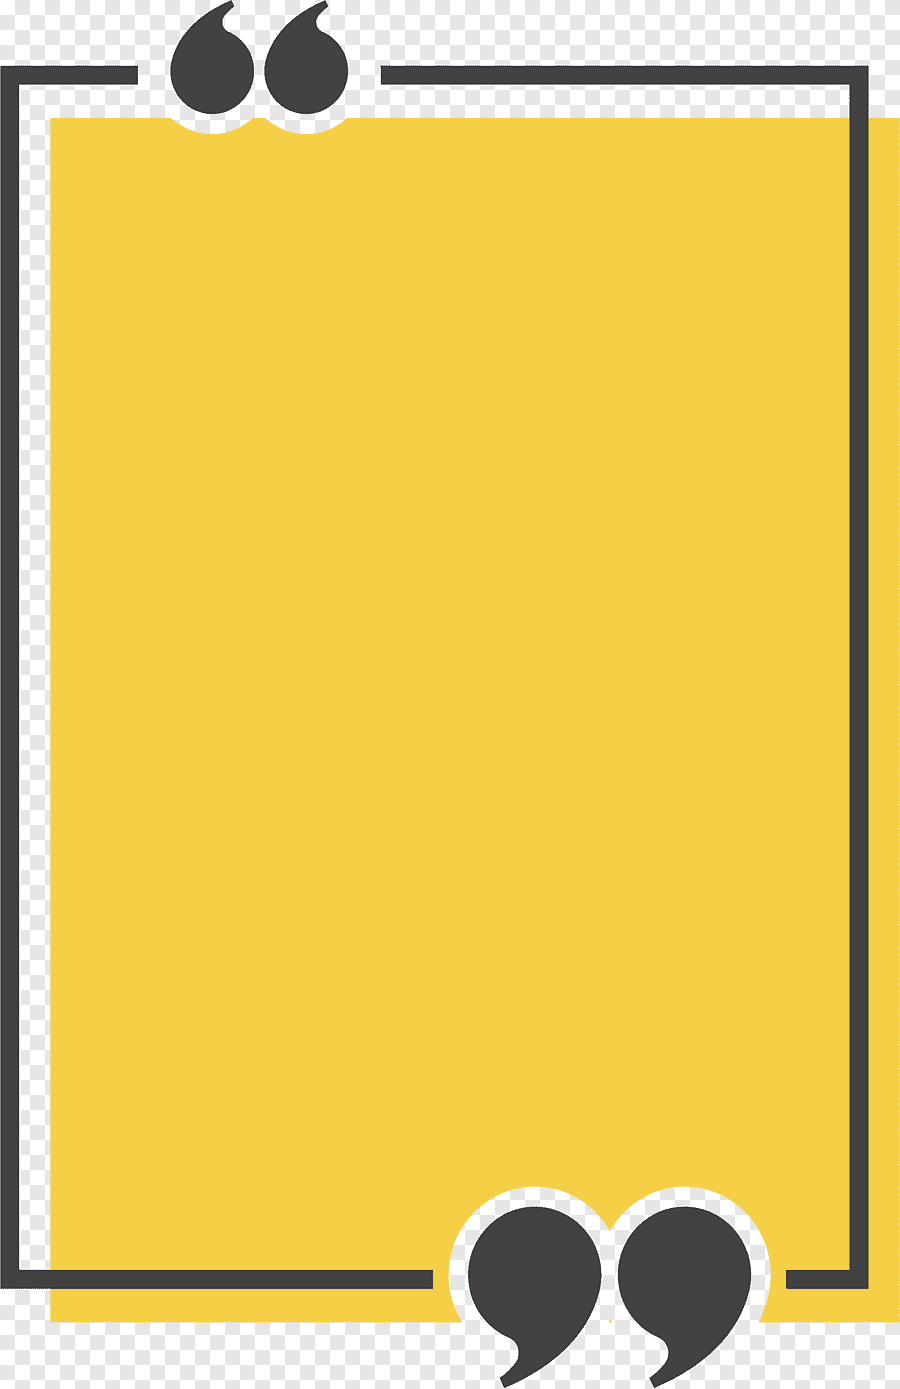 Congee Text Box Quotation Icon Yellow Rectangle Title Box Yellow Powerpoint Background Design Graphic Design Background Templates Instagram Logo Transparent